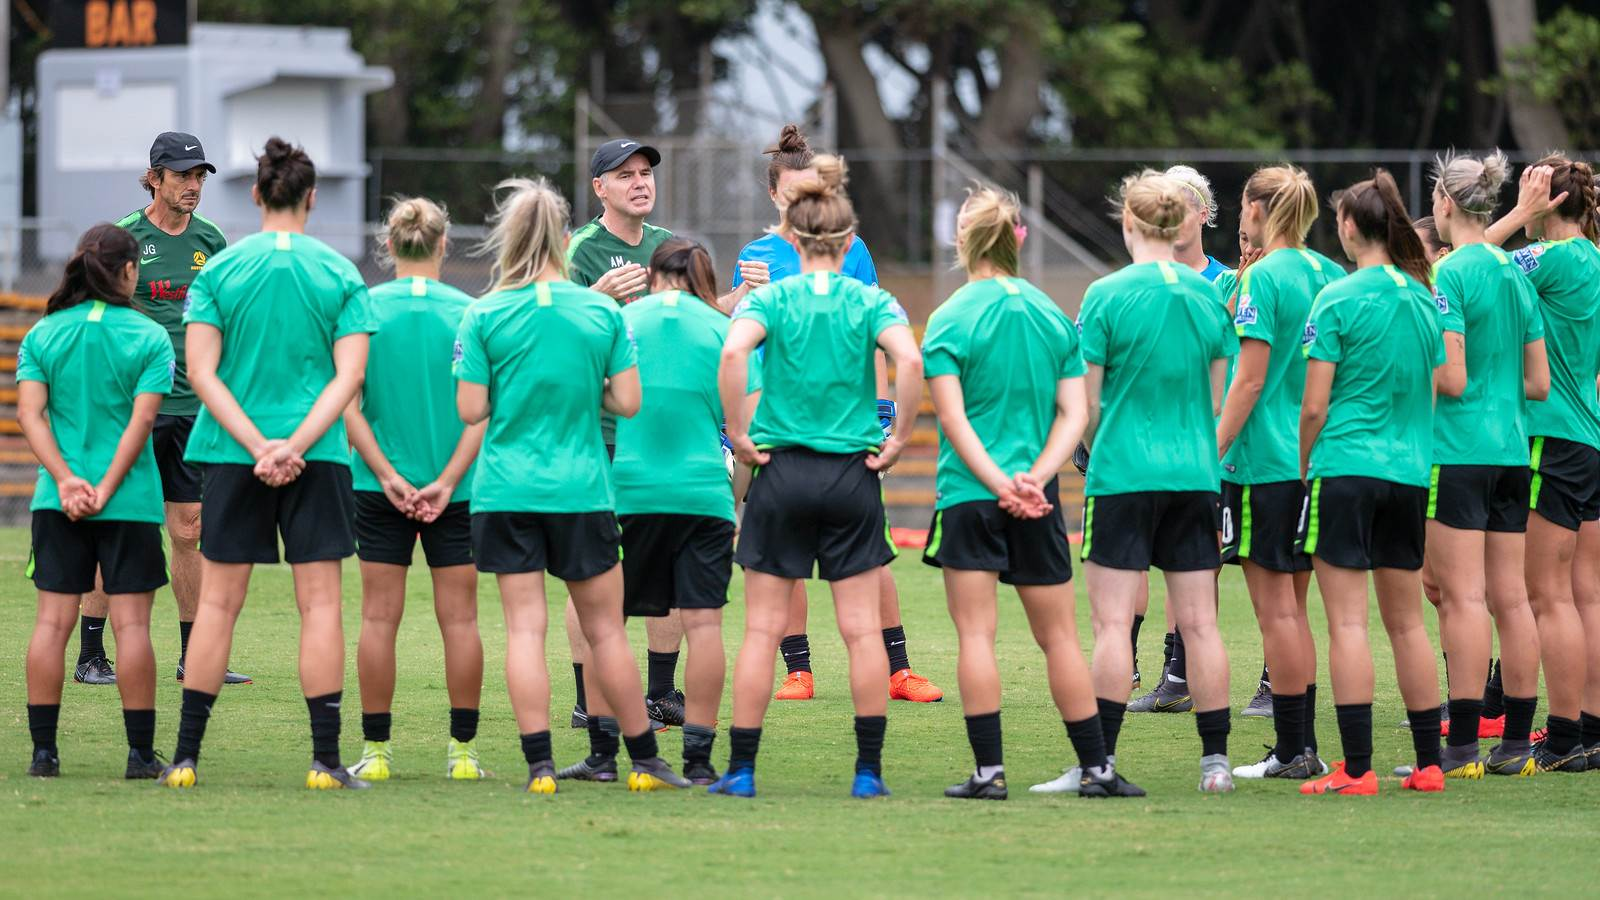 Unchanged Matildas set for Golden playoff